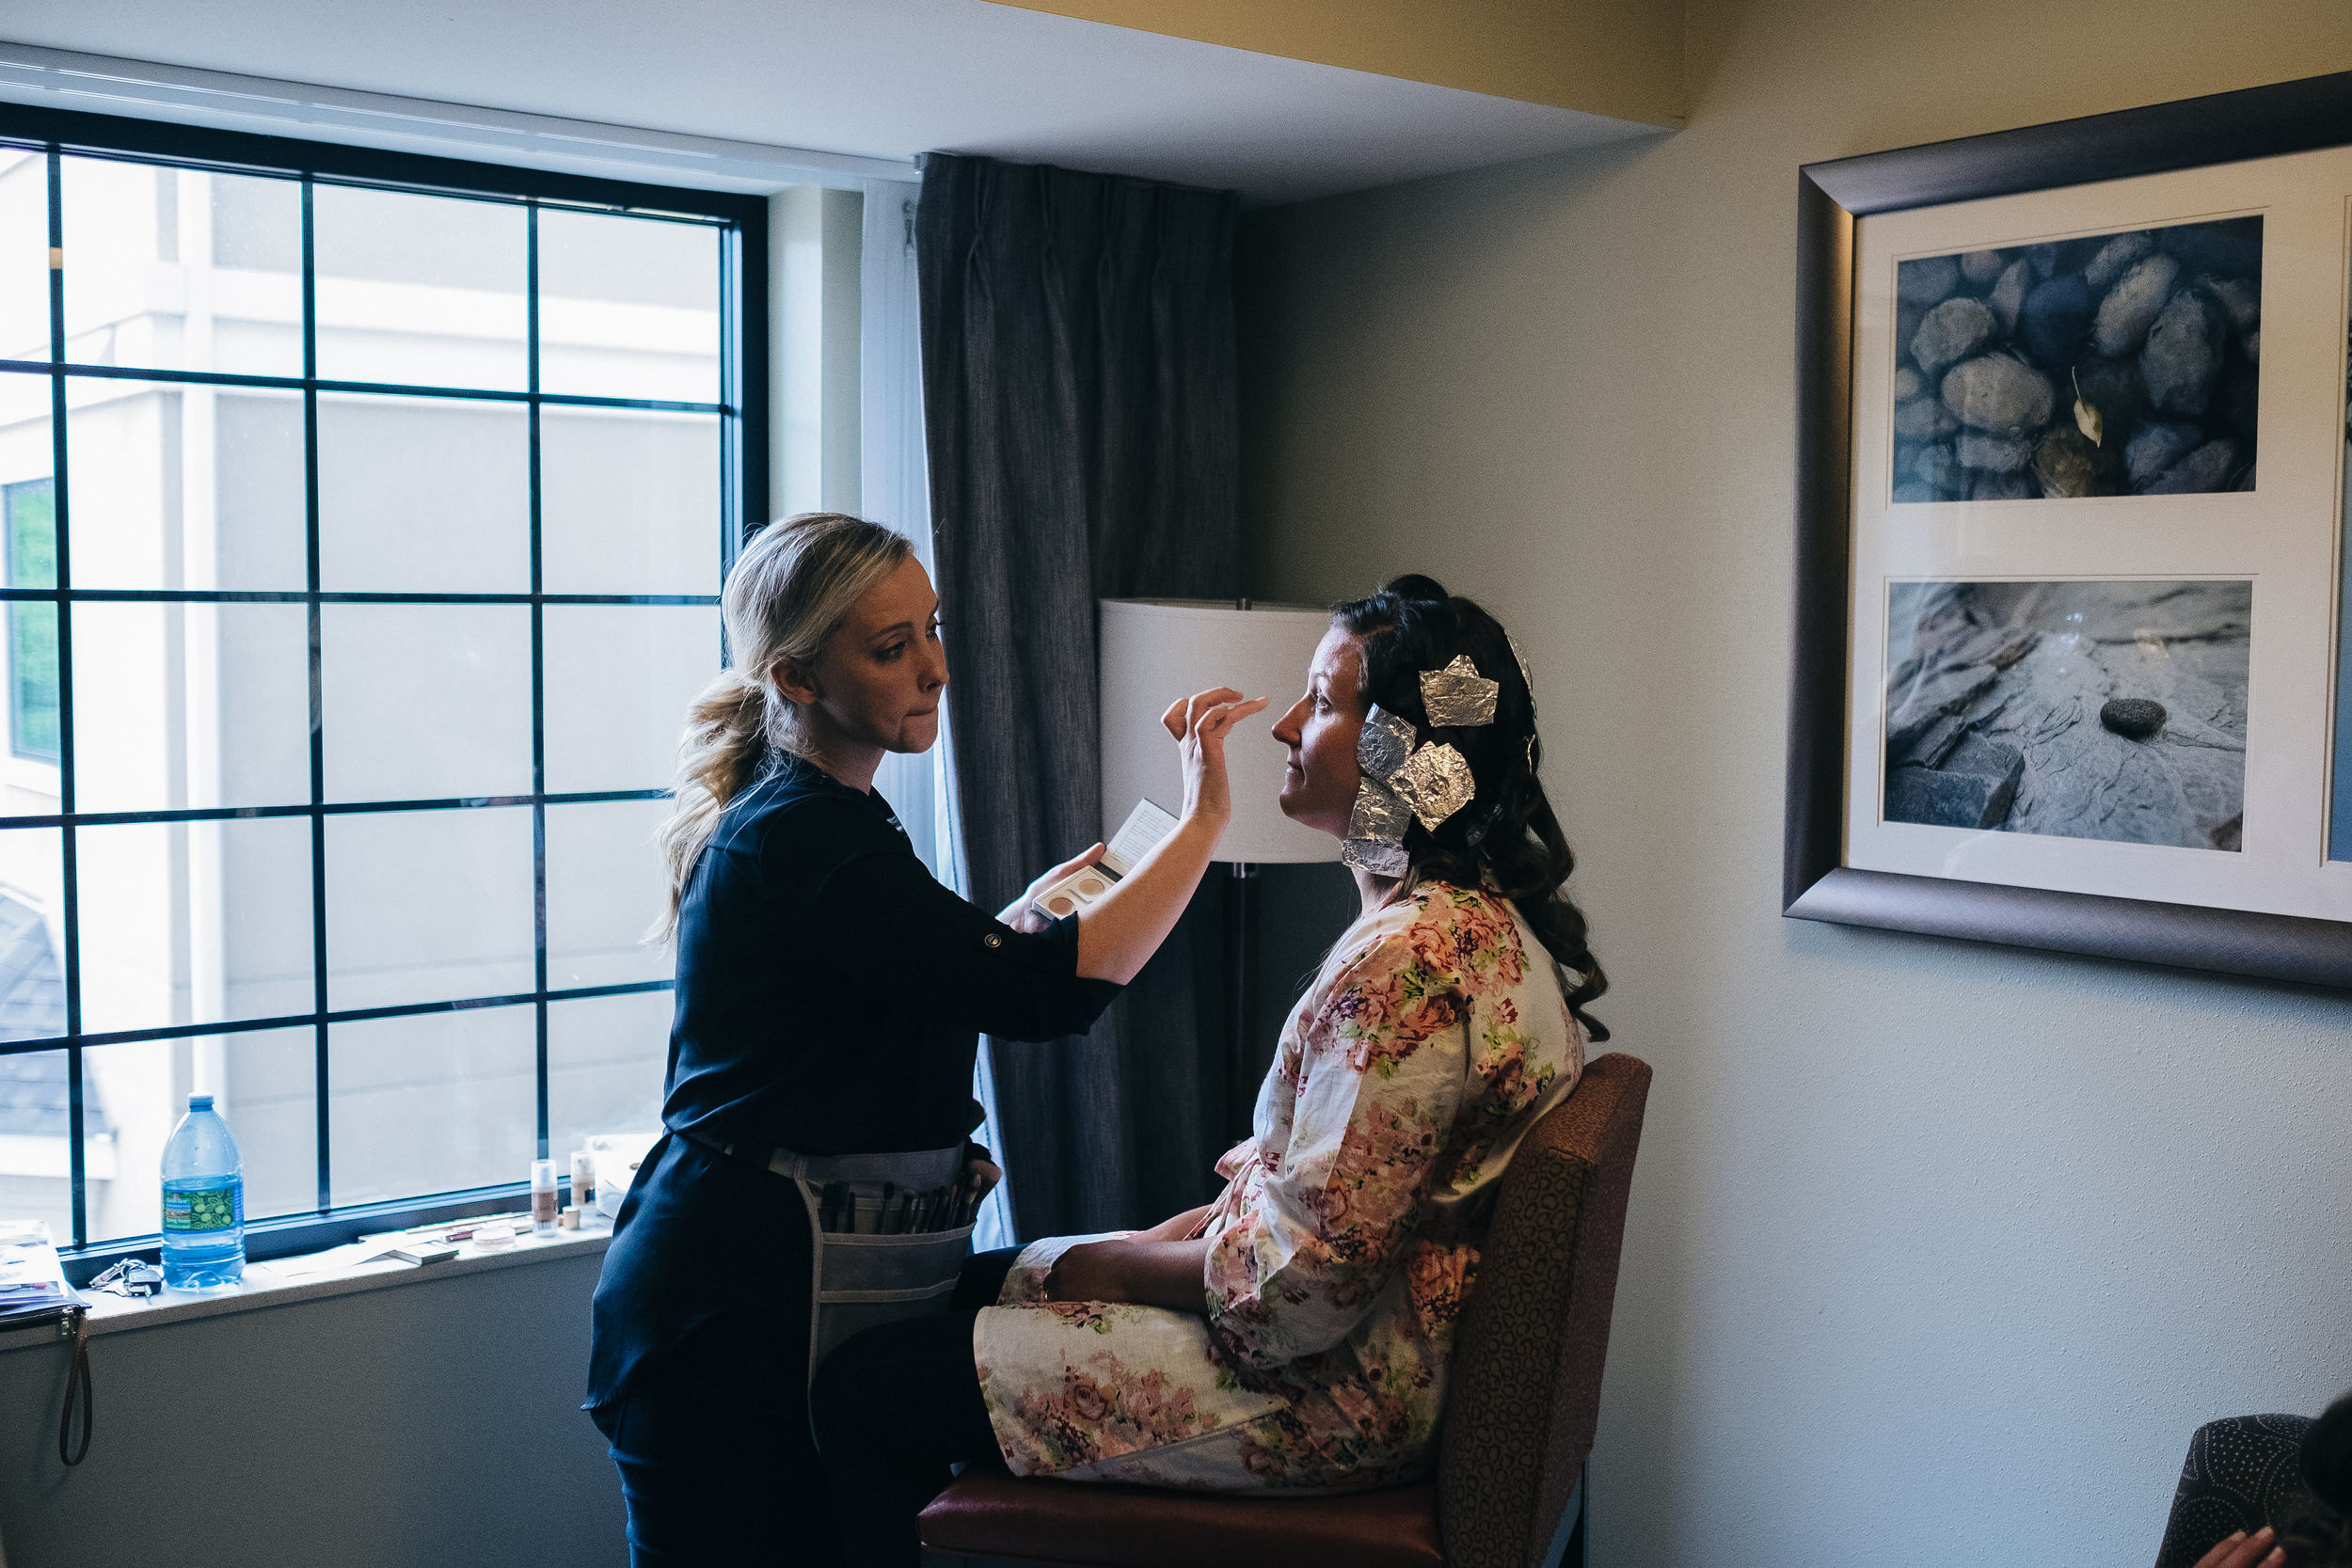 Bride gets makeup done before ceremony at hotel in Canton, Ohio.